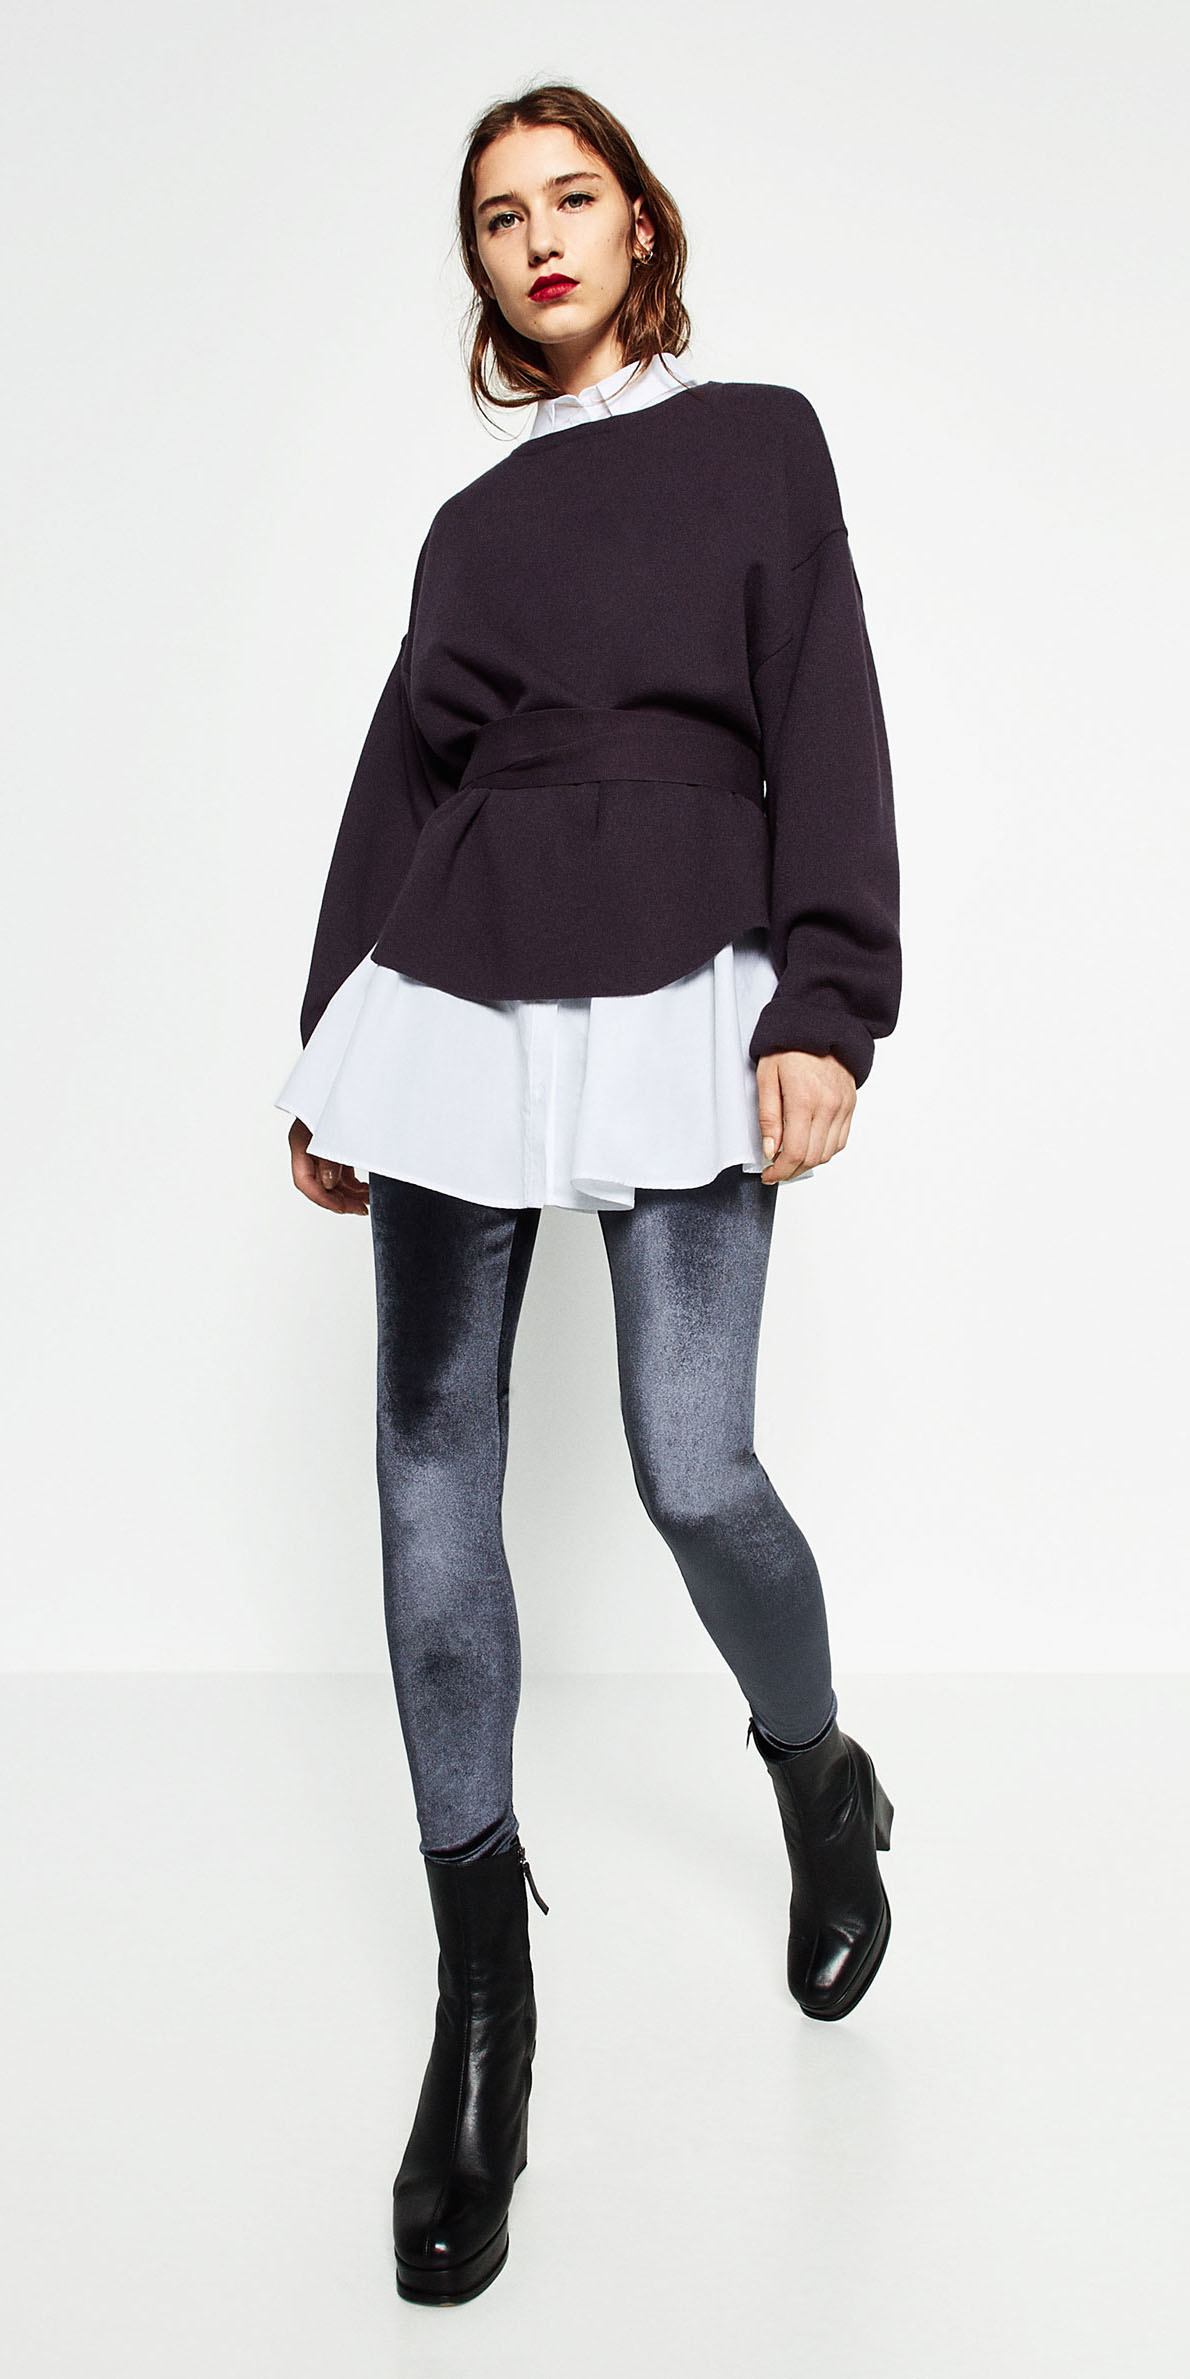 blue-navy-leggings-blue-navy-sweater-white-collared-shirt-layer-velvet-black-shoe-booties-fall-winter-hairr-lunch.jpg